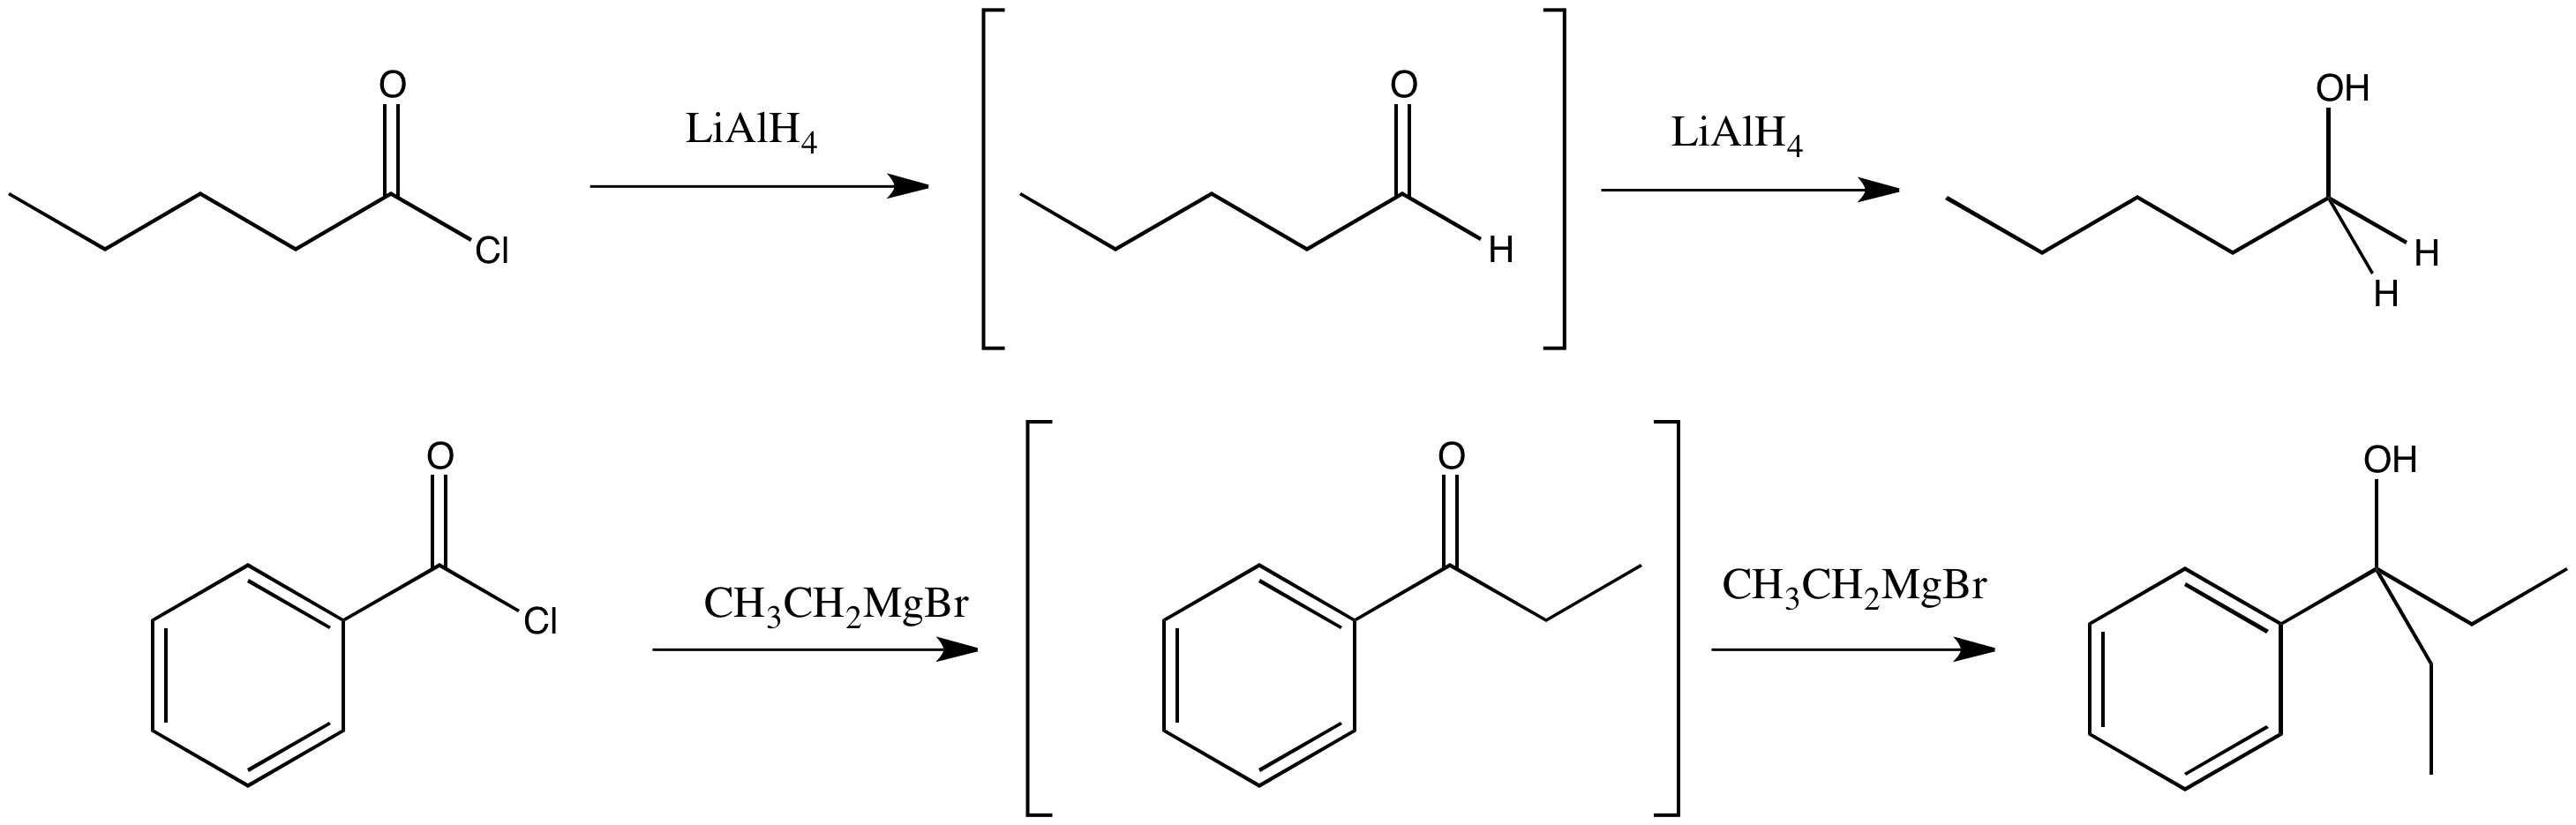 Grignard Reaction With Ring